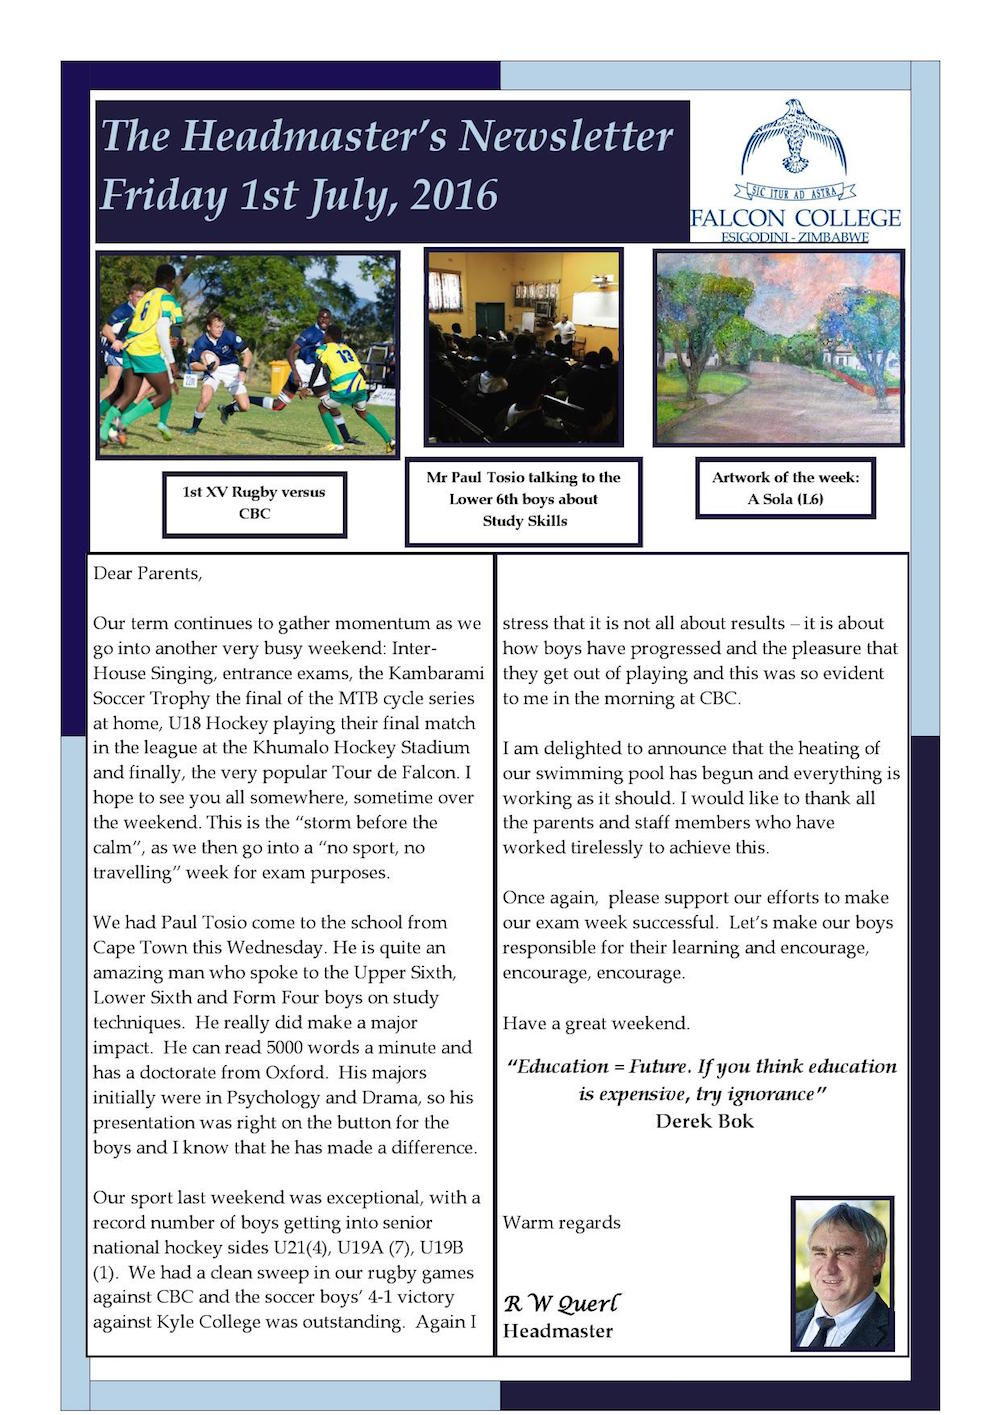 Headmaster's Newsletter Friday 1st July 2016  edited_000001